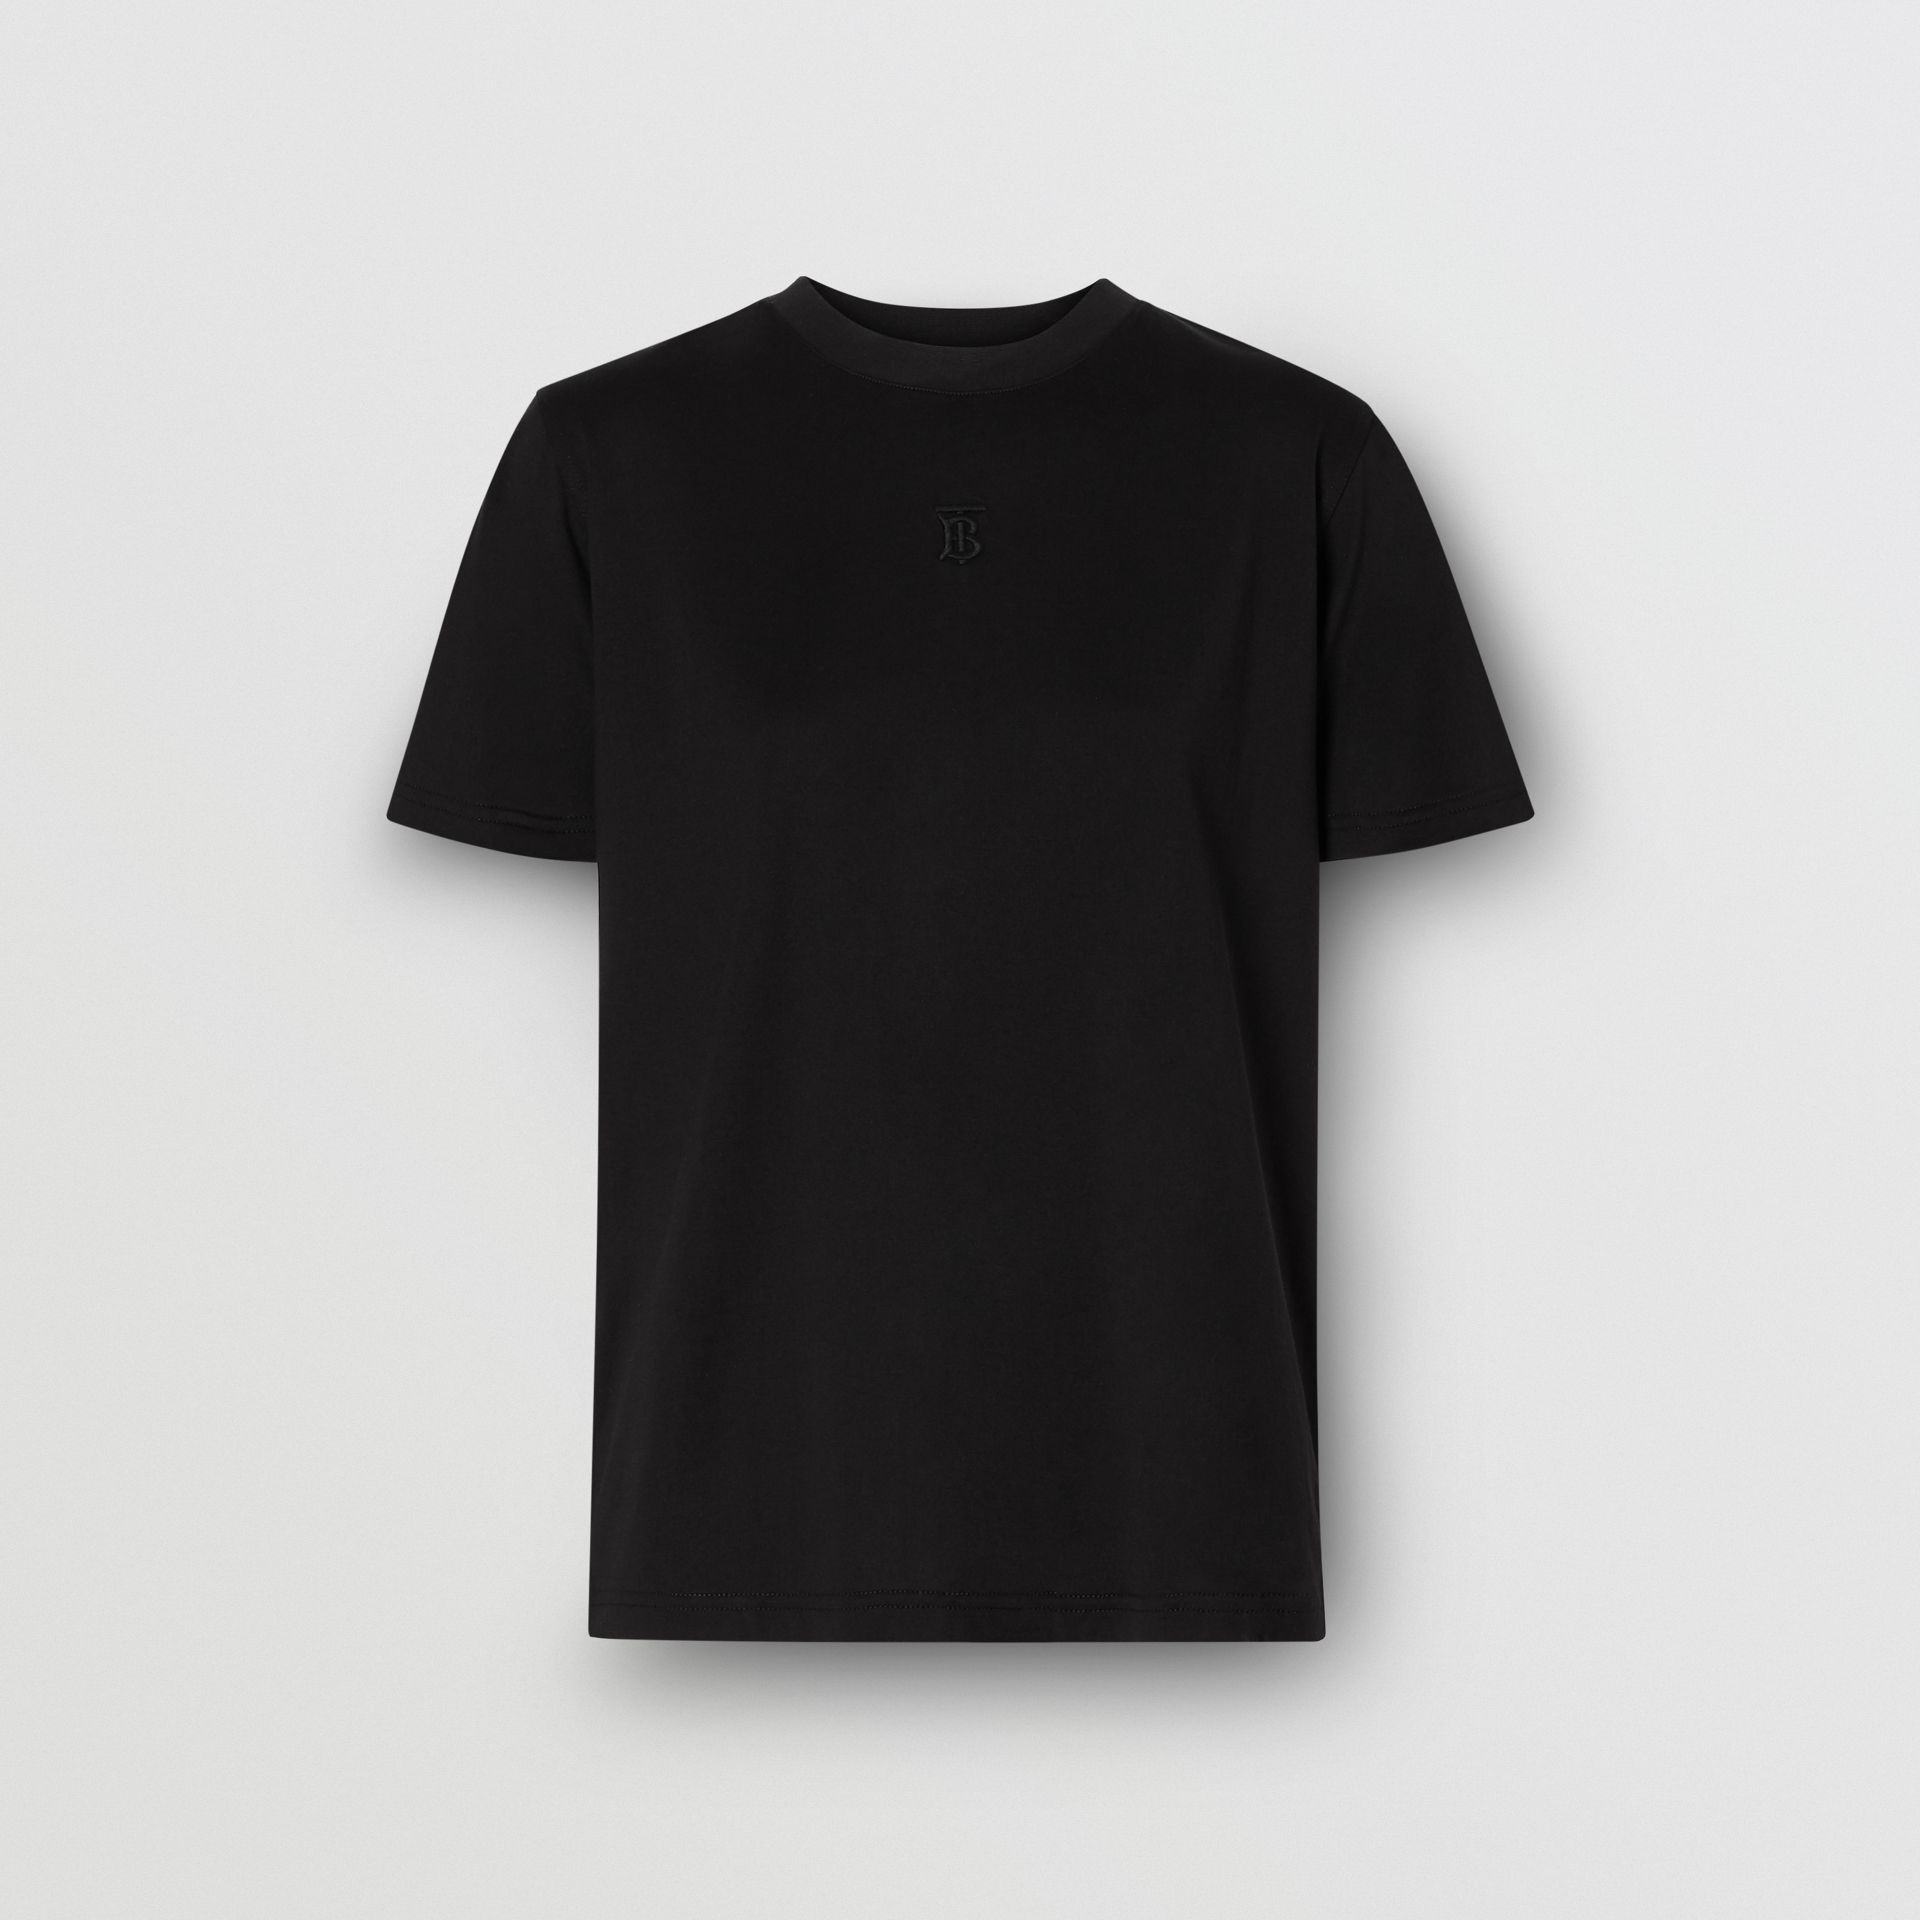 Monogram Motif Cotton T-shirt in Black - Women | Burberry United States - gallery image 3